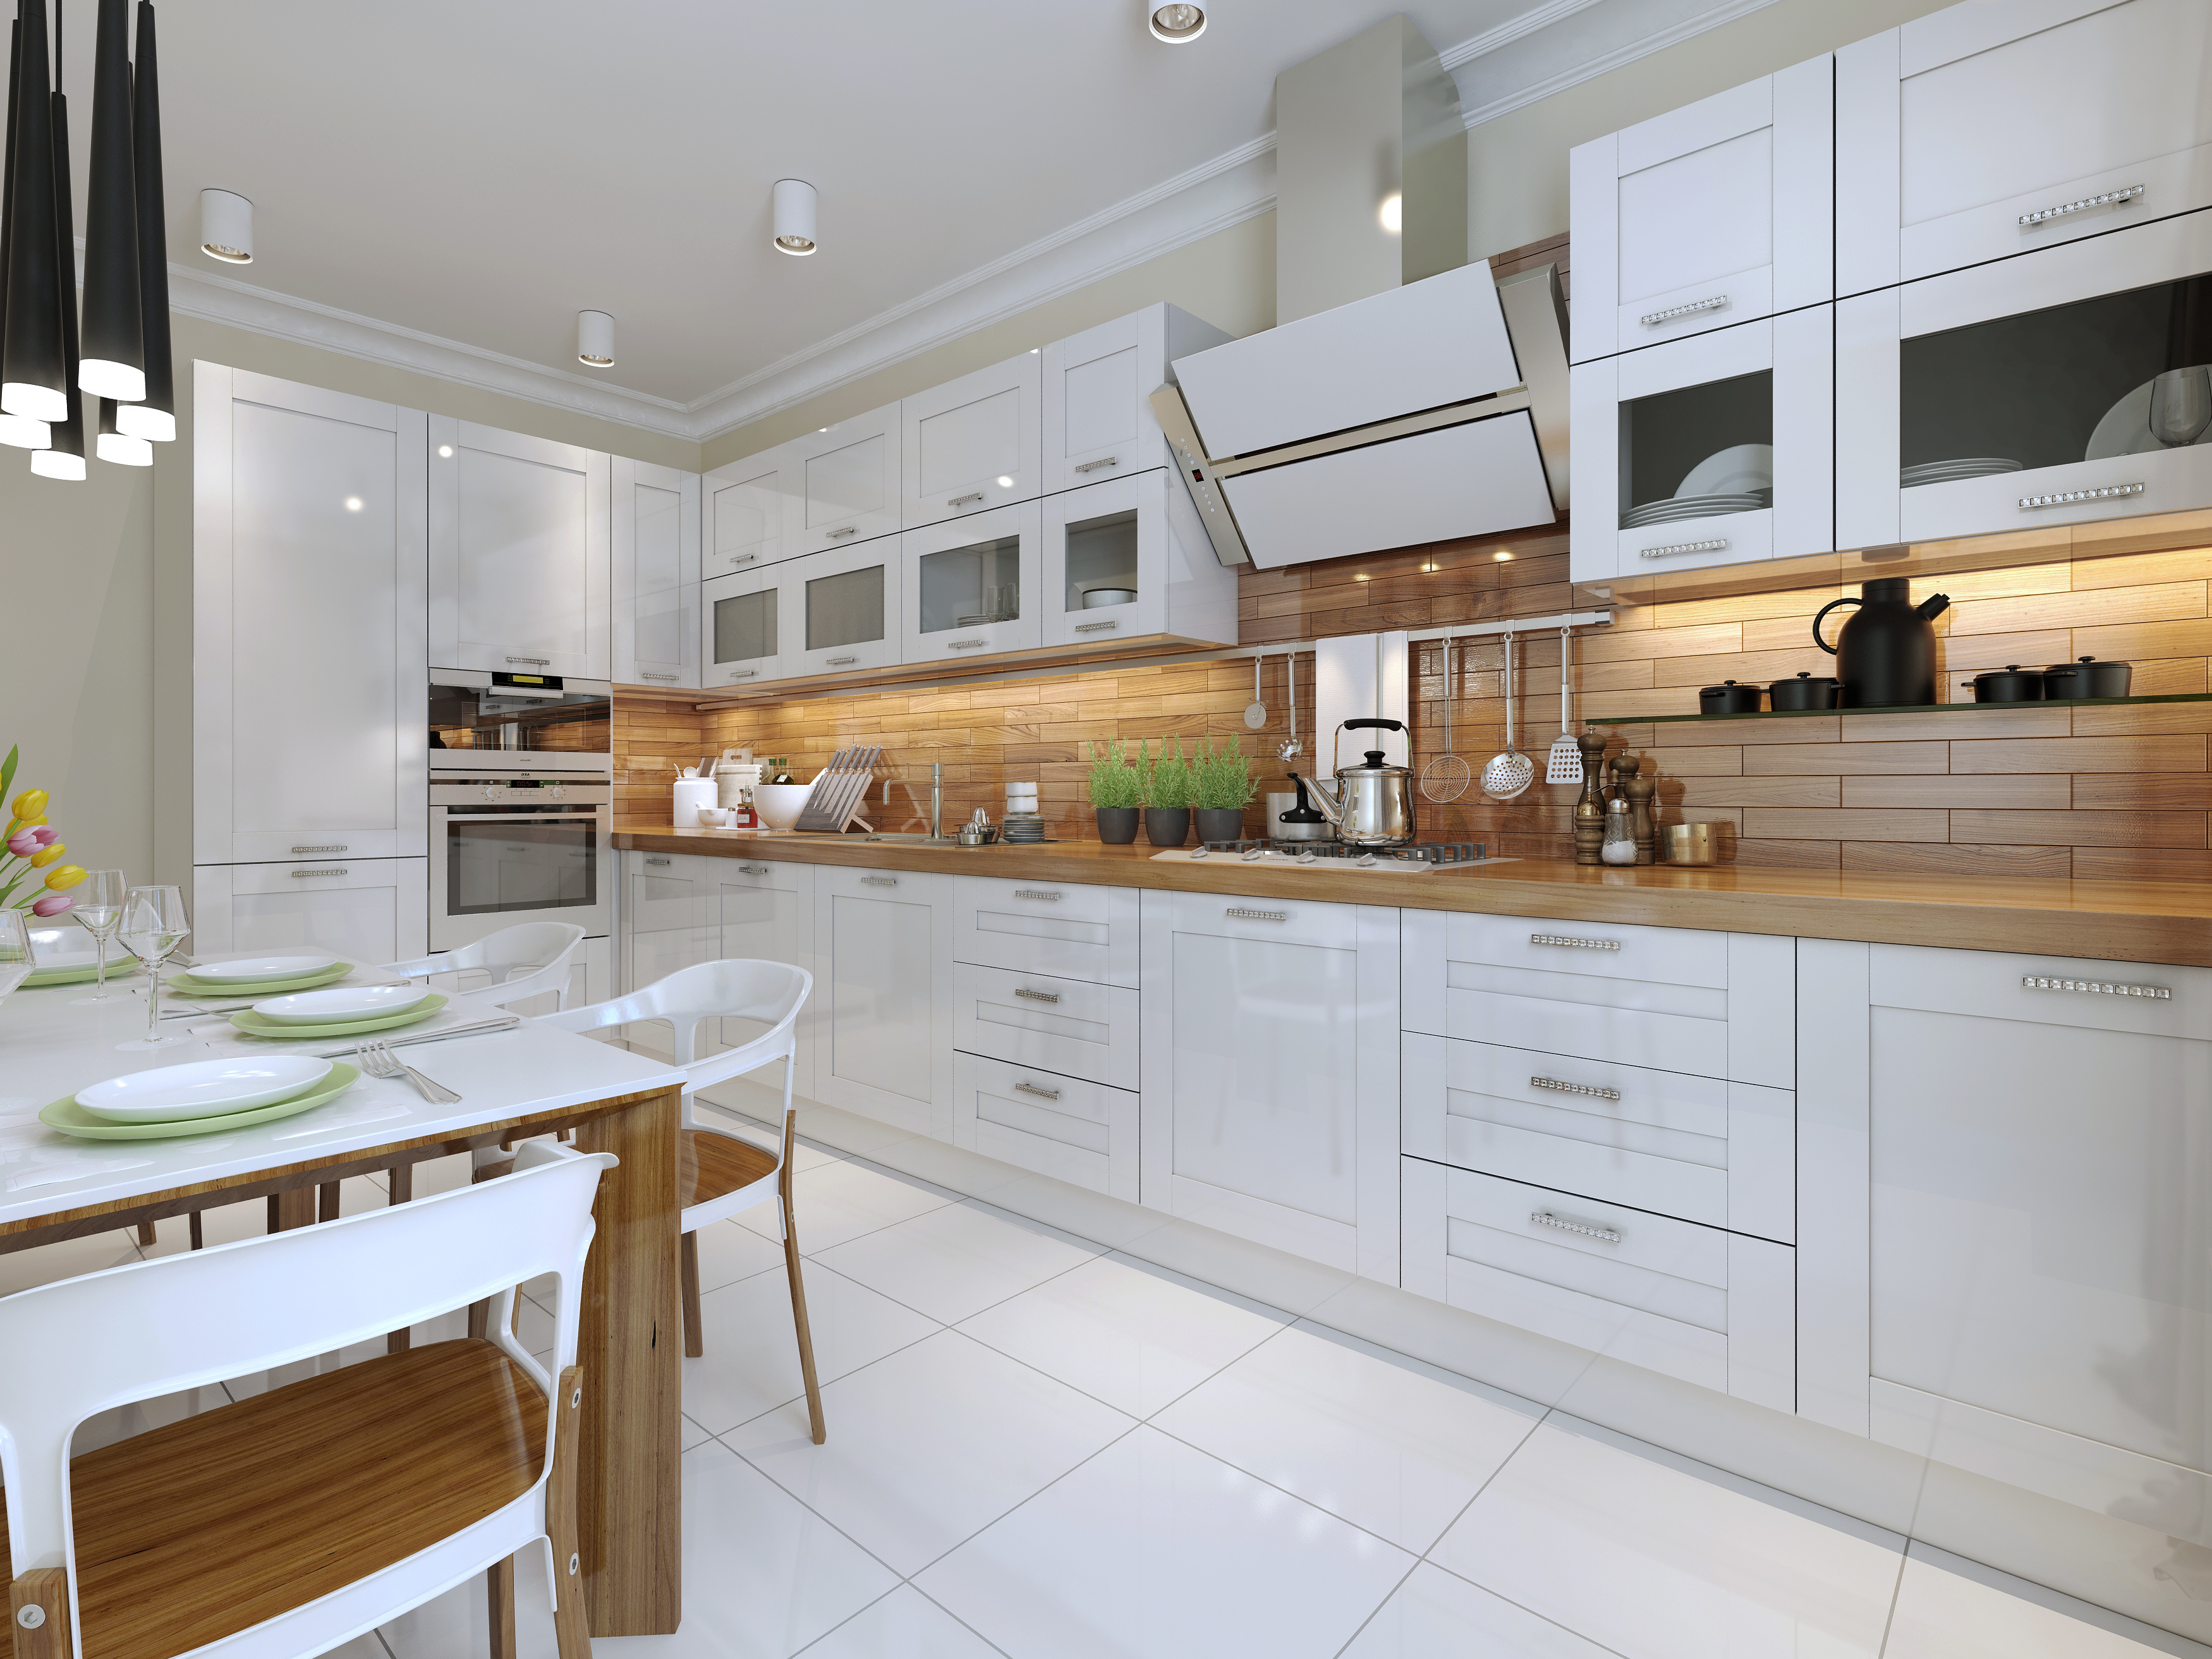 Excellent Modern Kitchen Designs 600 x 515 · 55 kB · jpeg